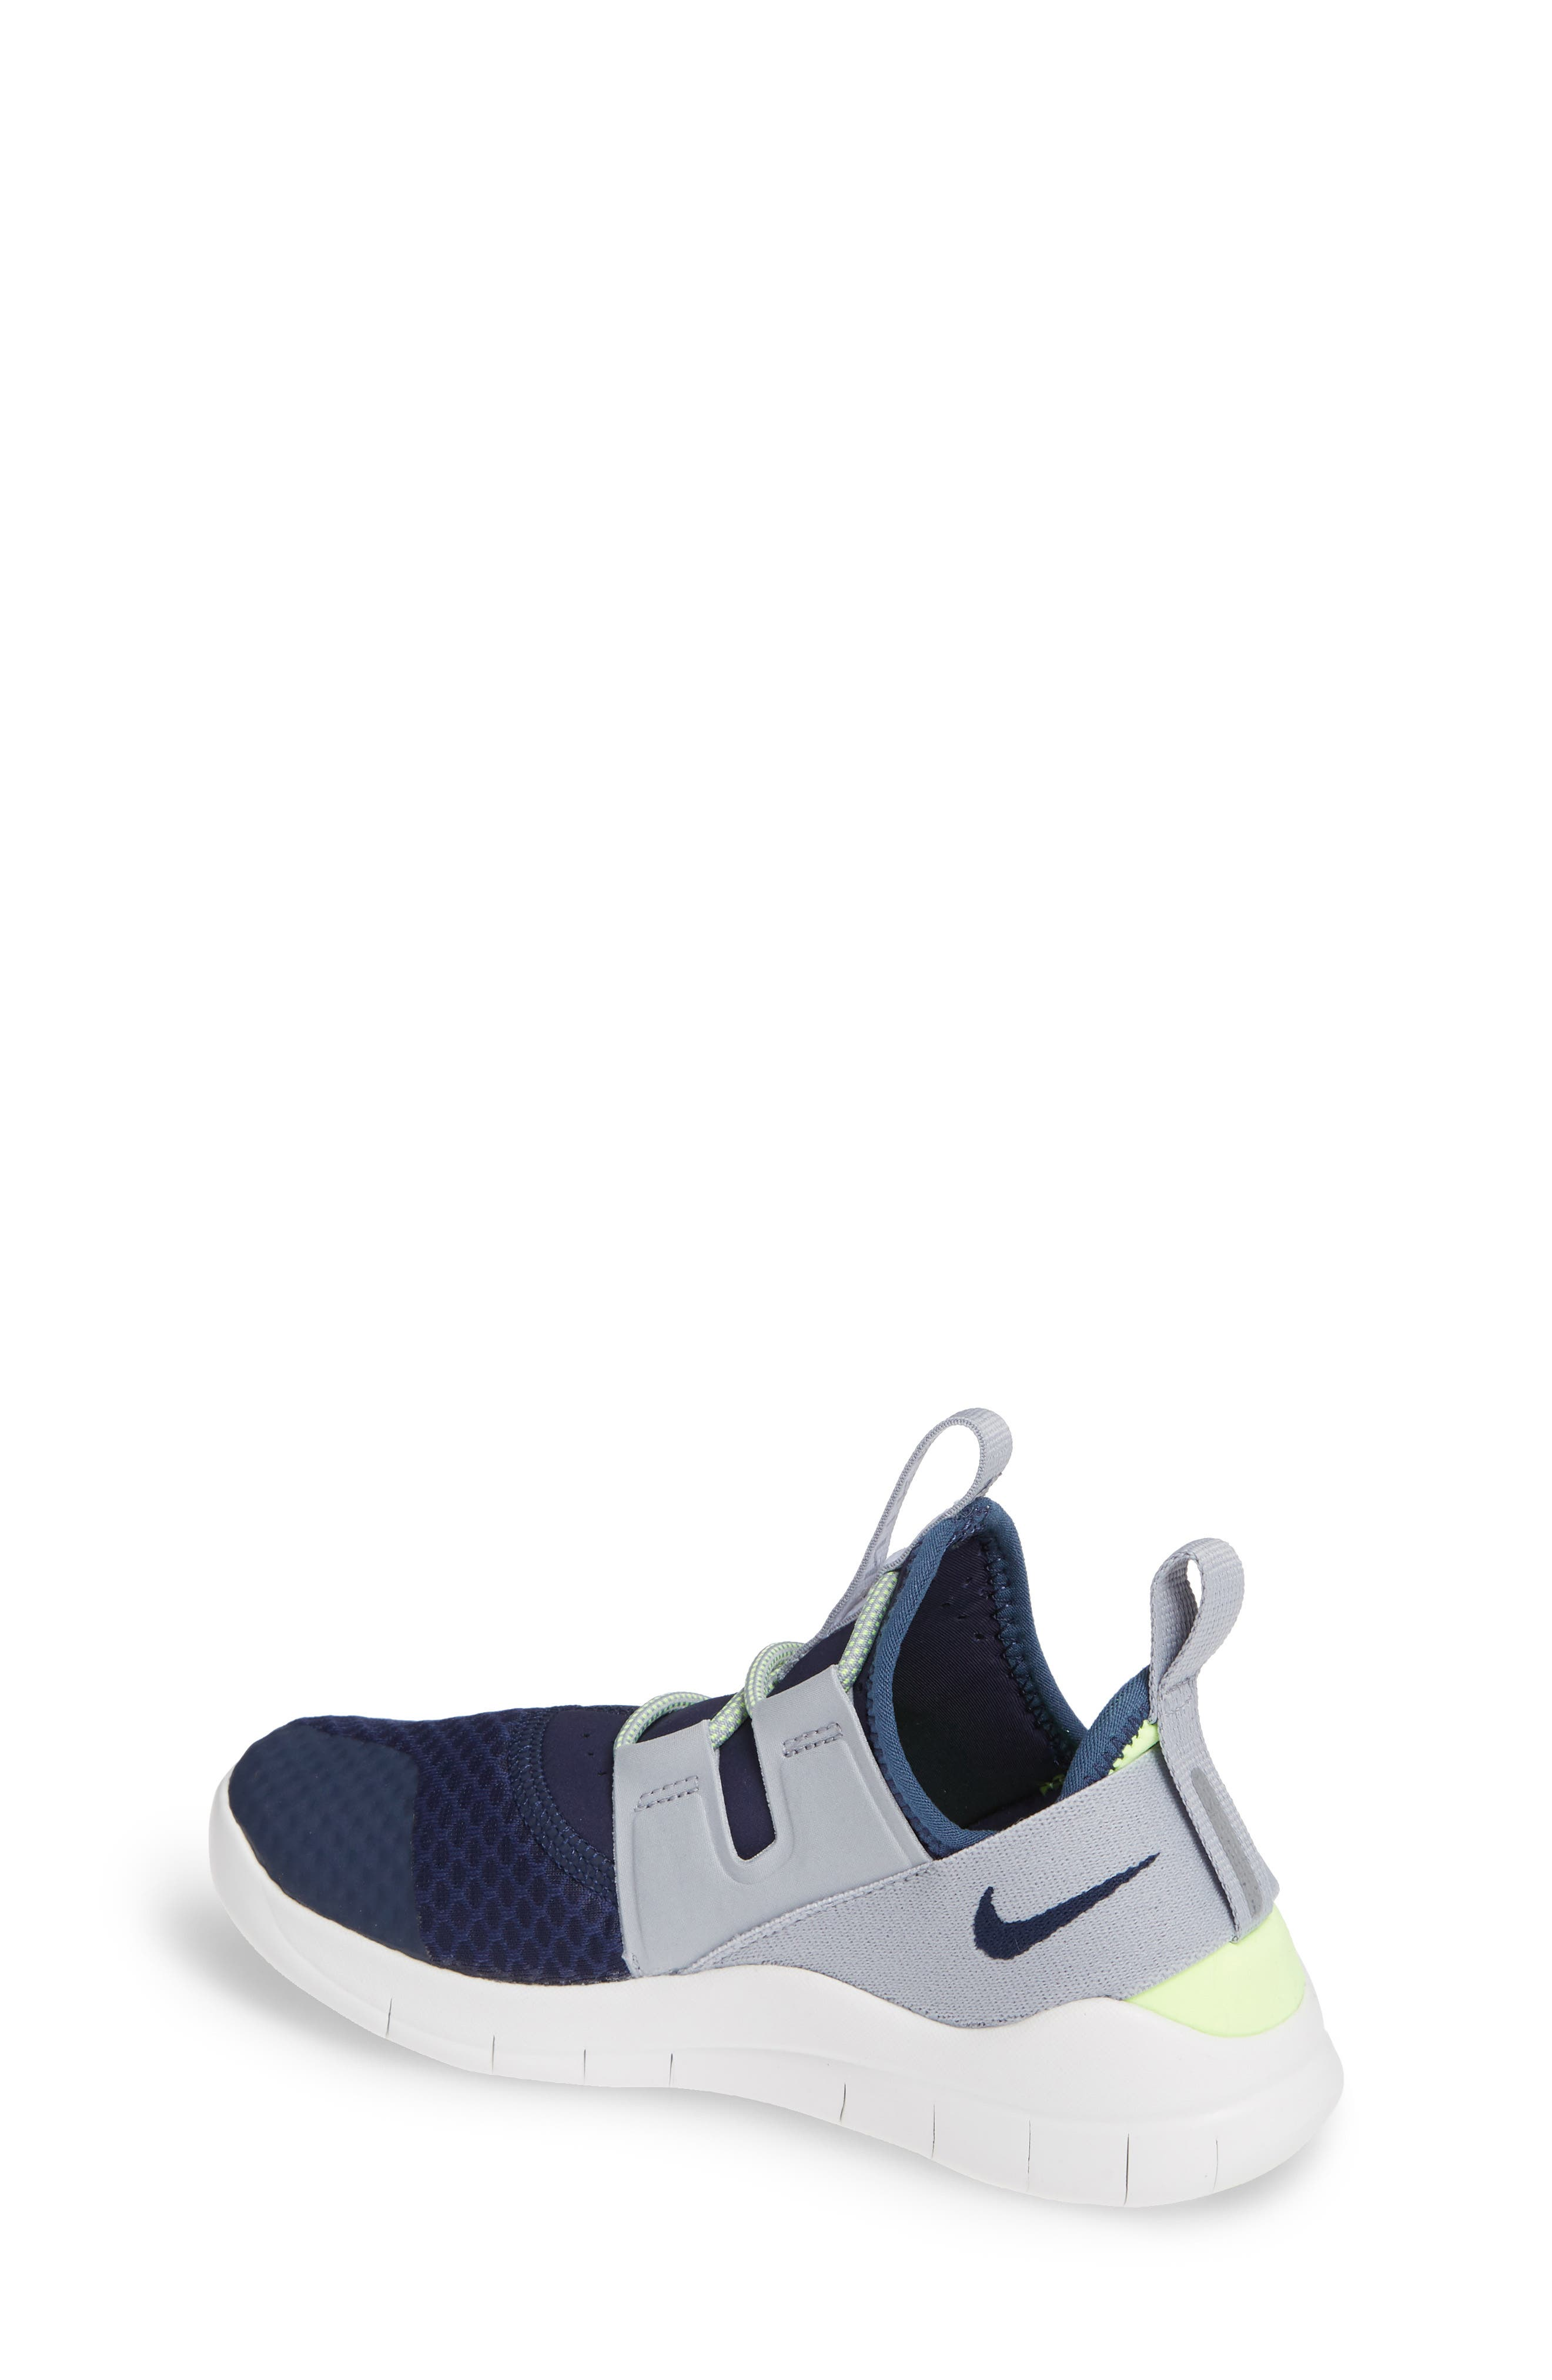 Free RN Commuter 2018 Running Shoe,                             Alternate thumbnail 2, color,                             MIDNIGHT/ OBSIDIAN/ WOLF GREY